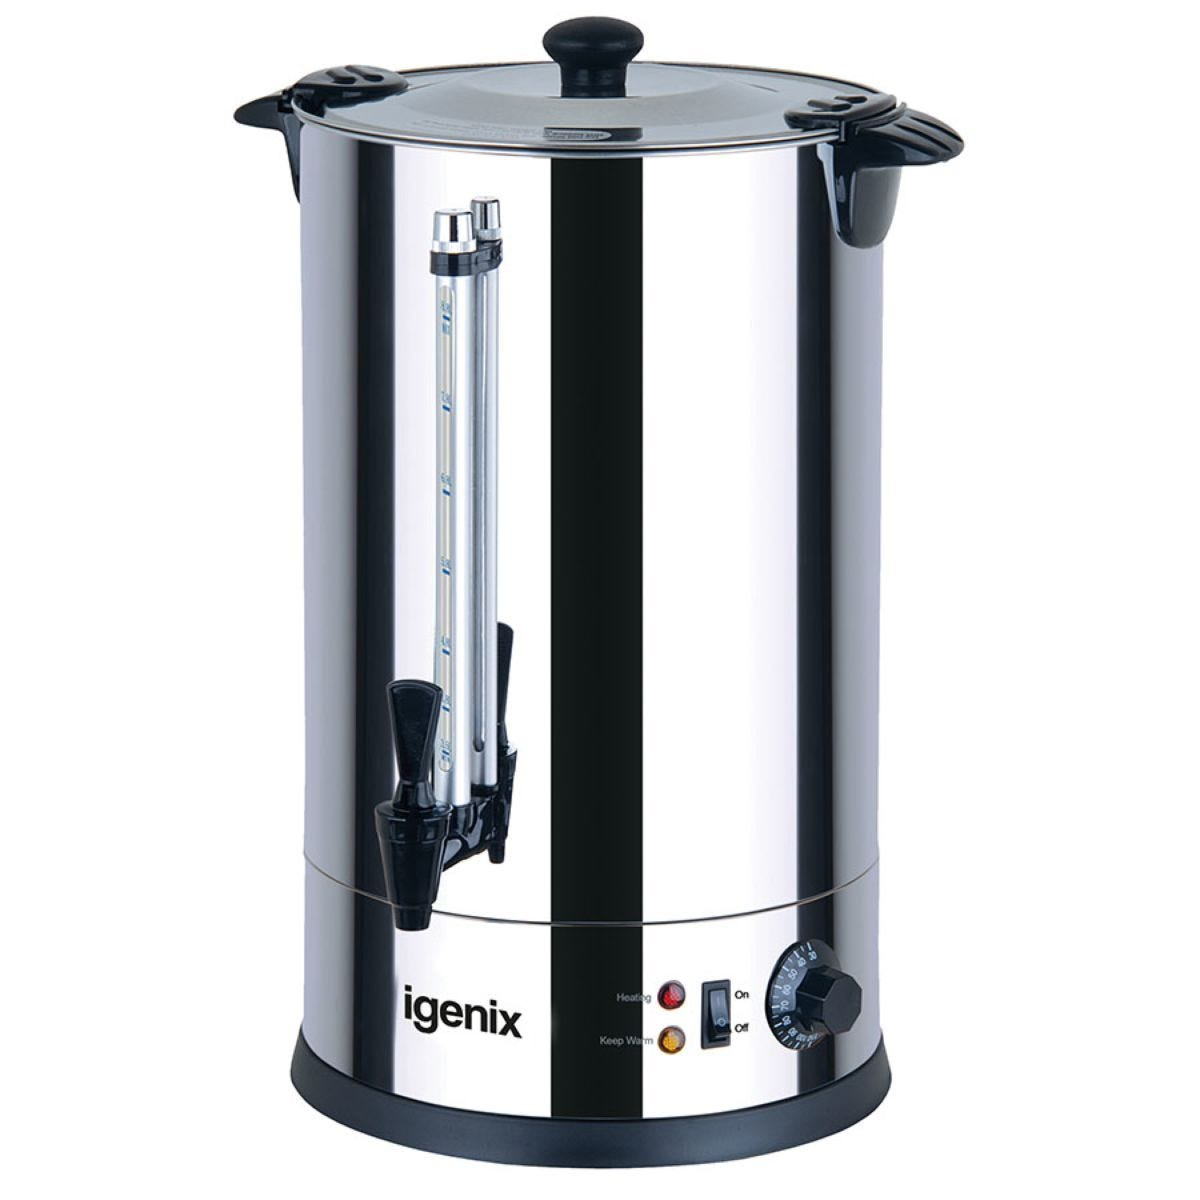 Igenix IG4018 18L Hot Water 1650W Catering Urn – Stainless Steel